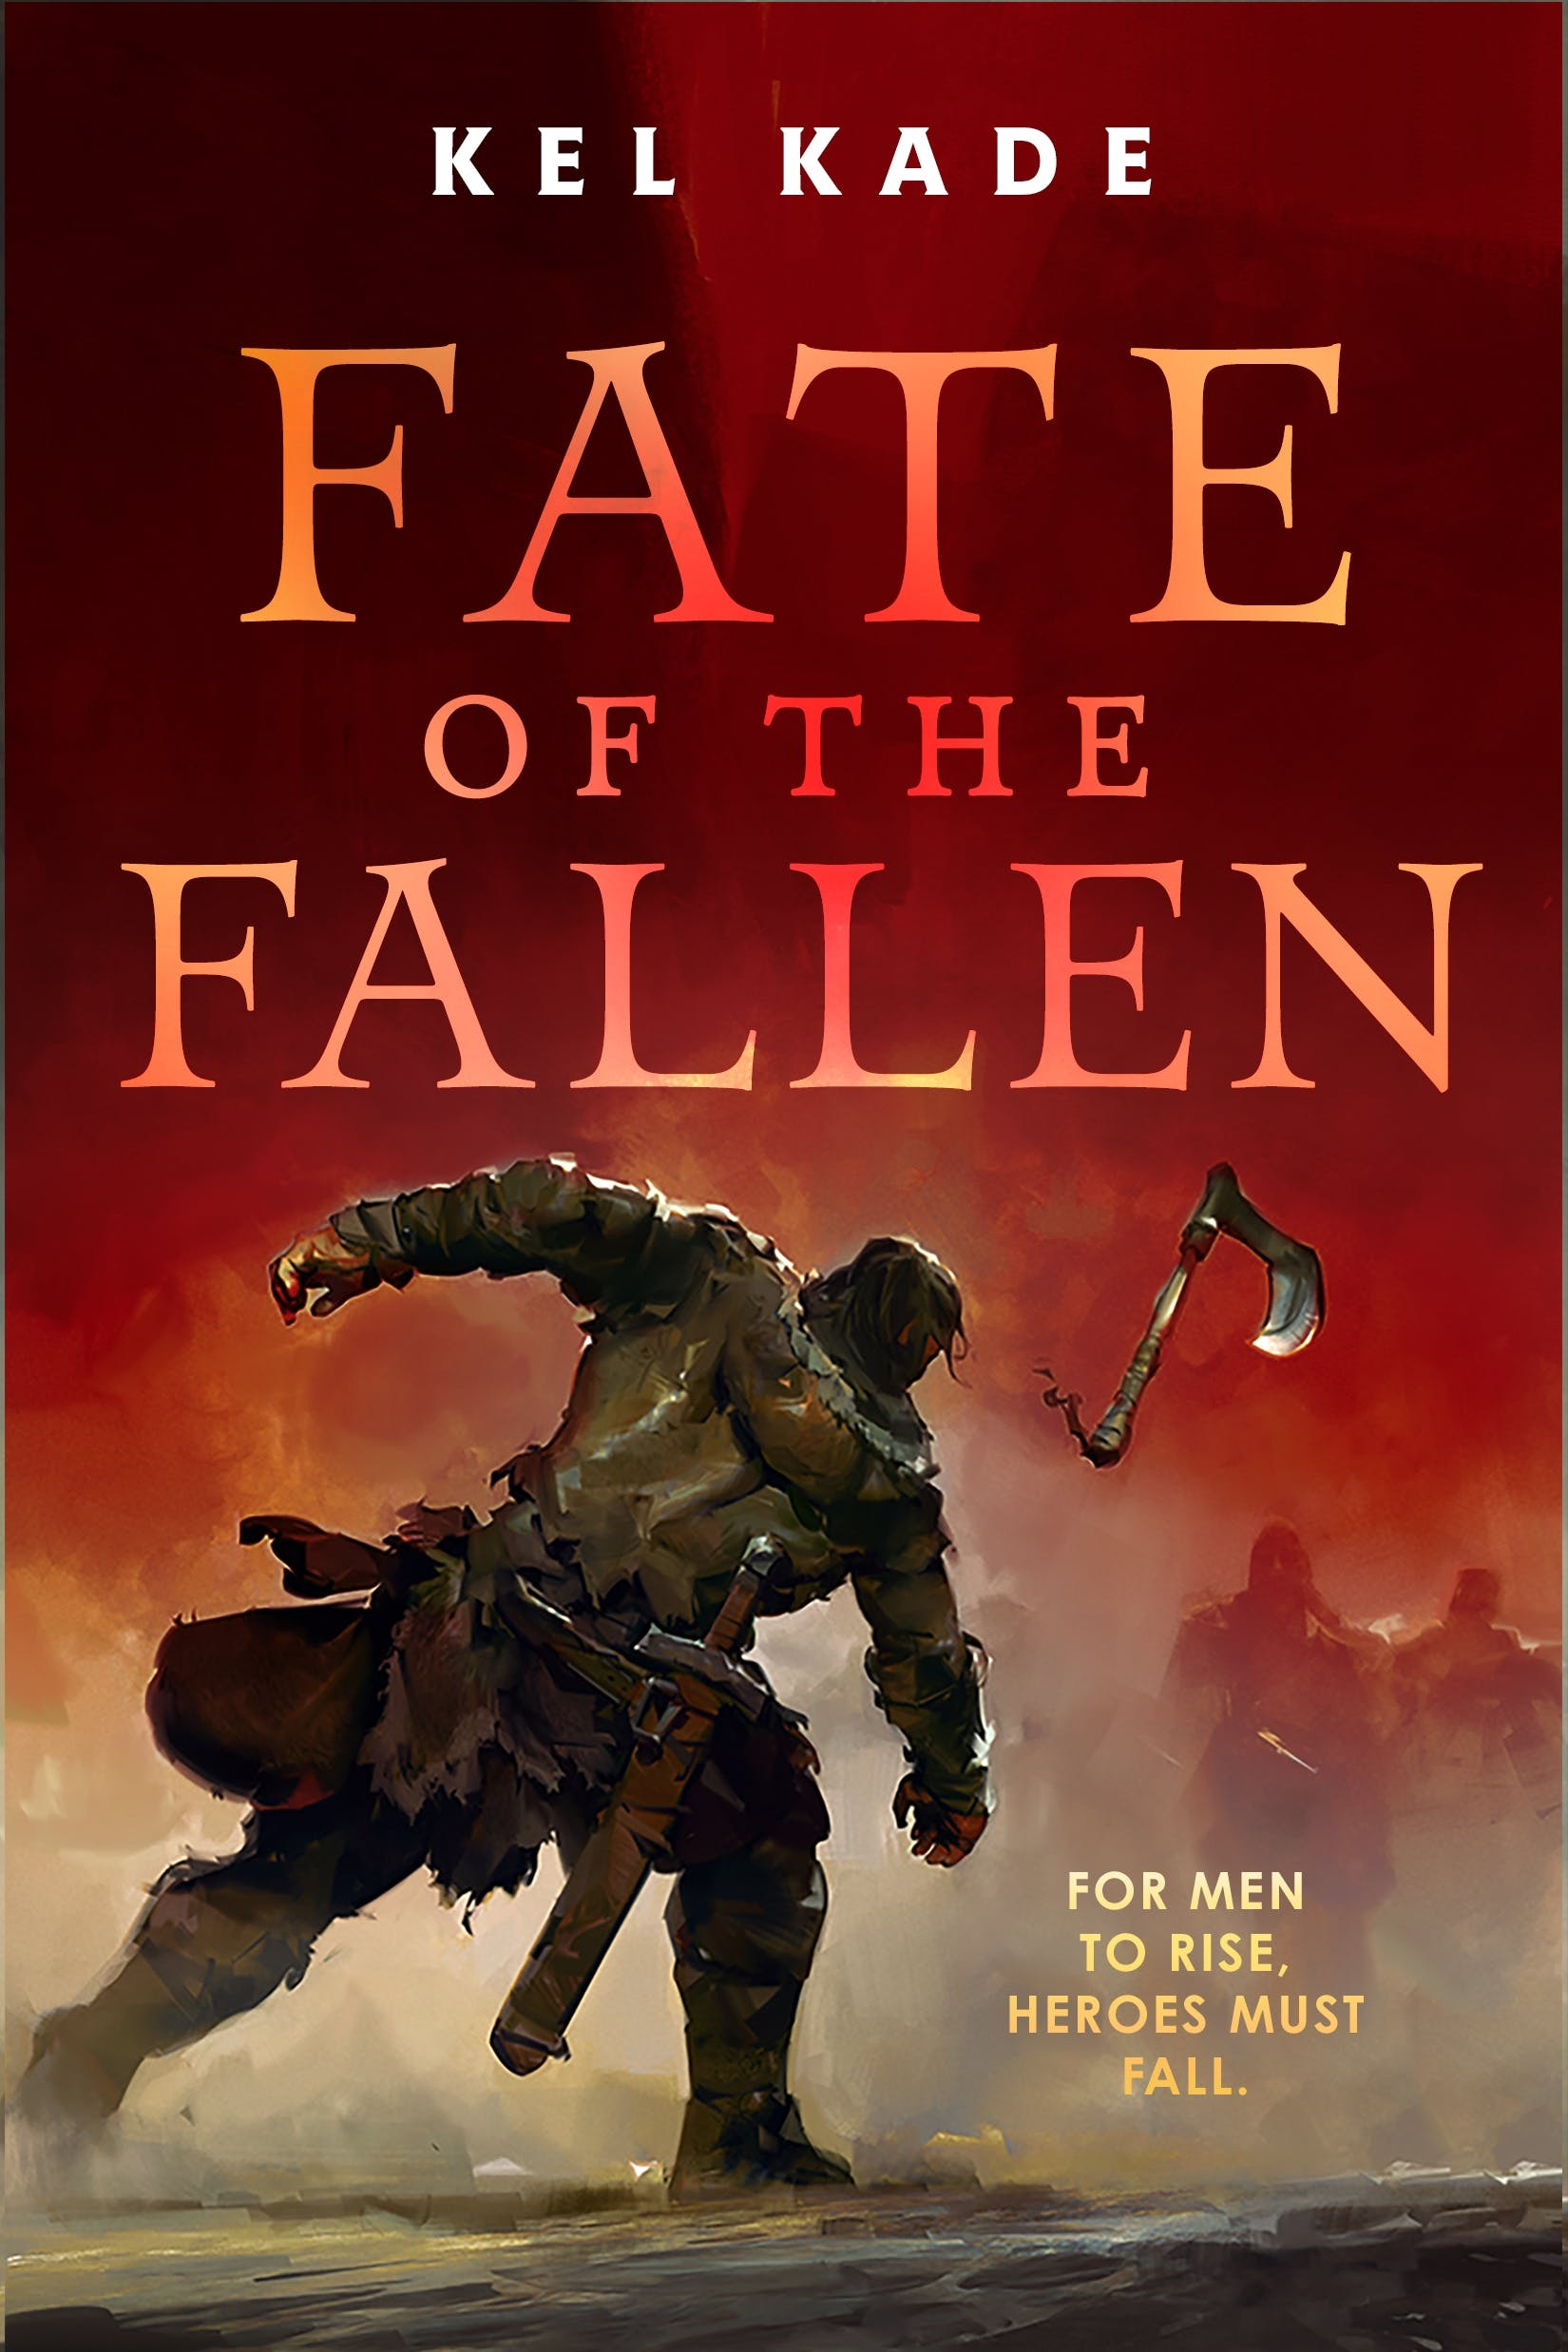 Image of Fate of the Fallen